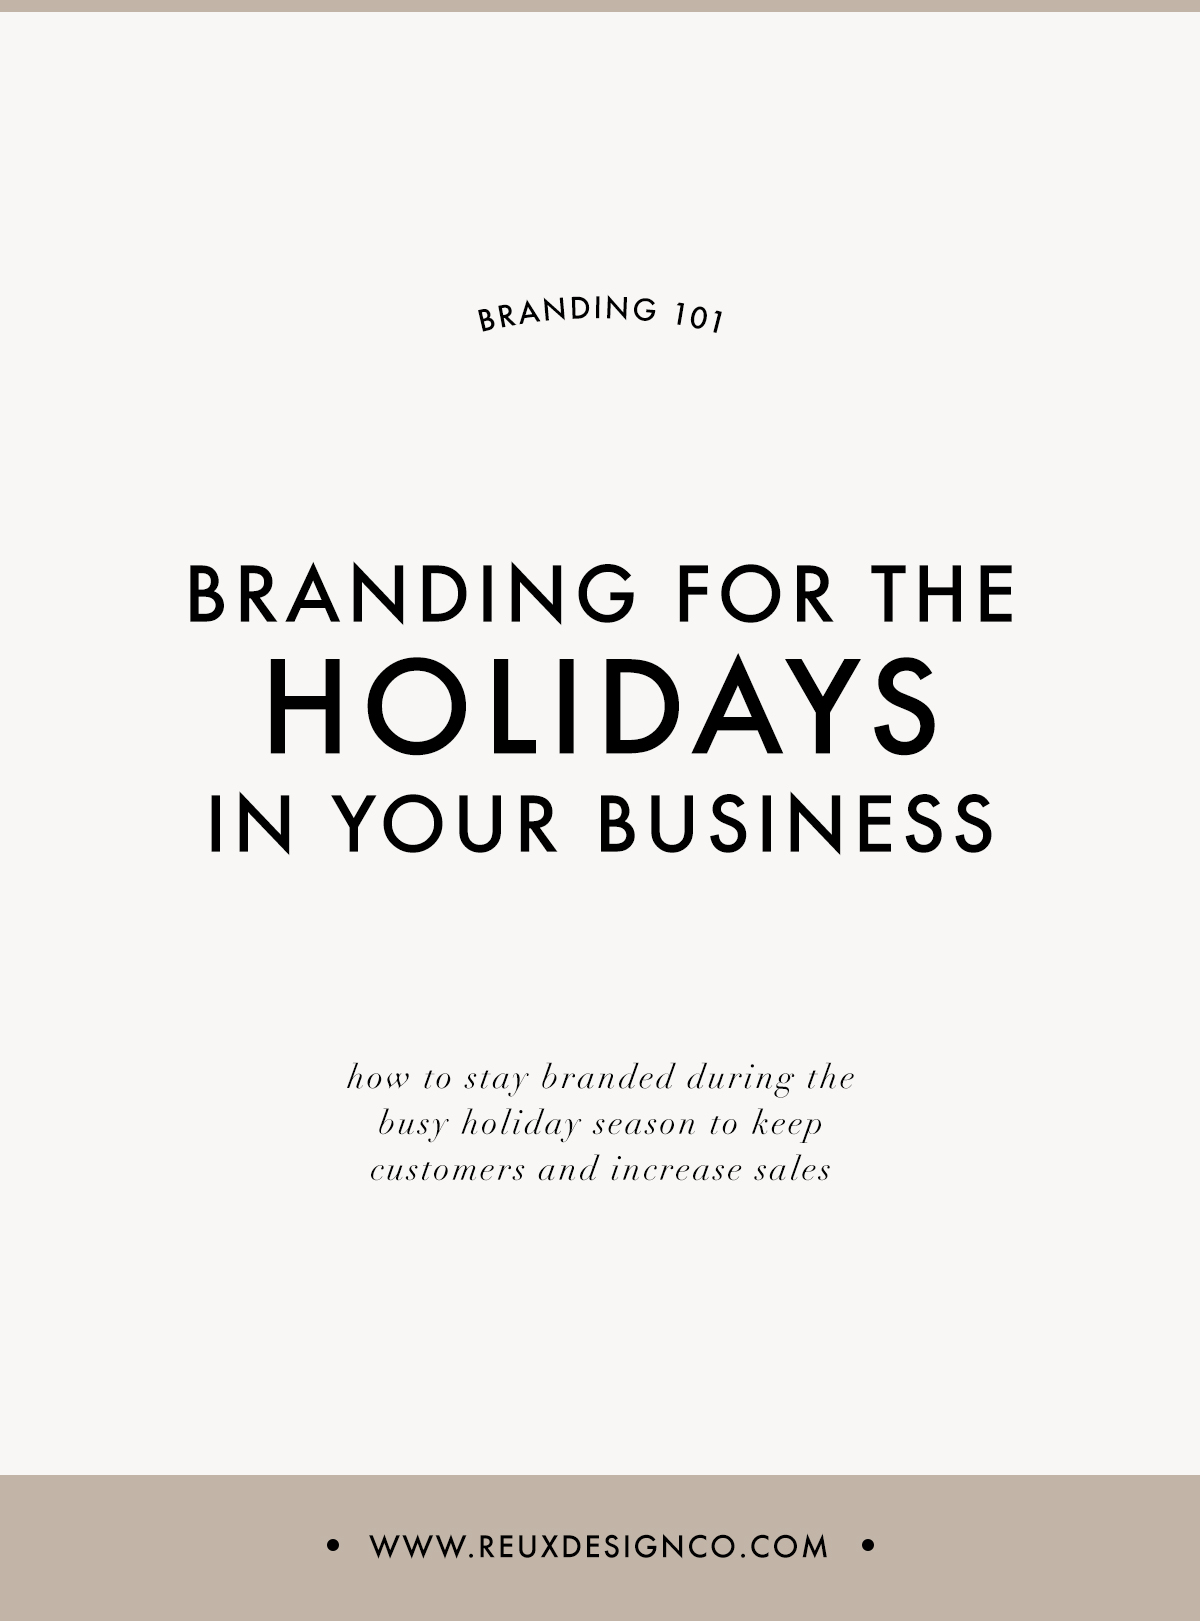 branding your business for the holidays to increase sales authentically | Reux Design Co.